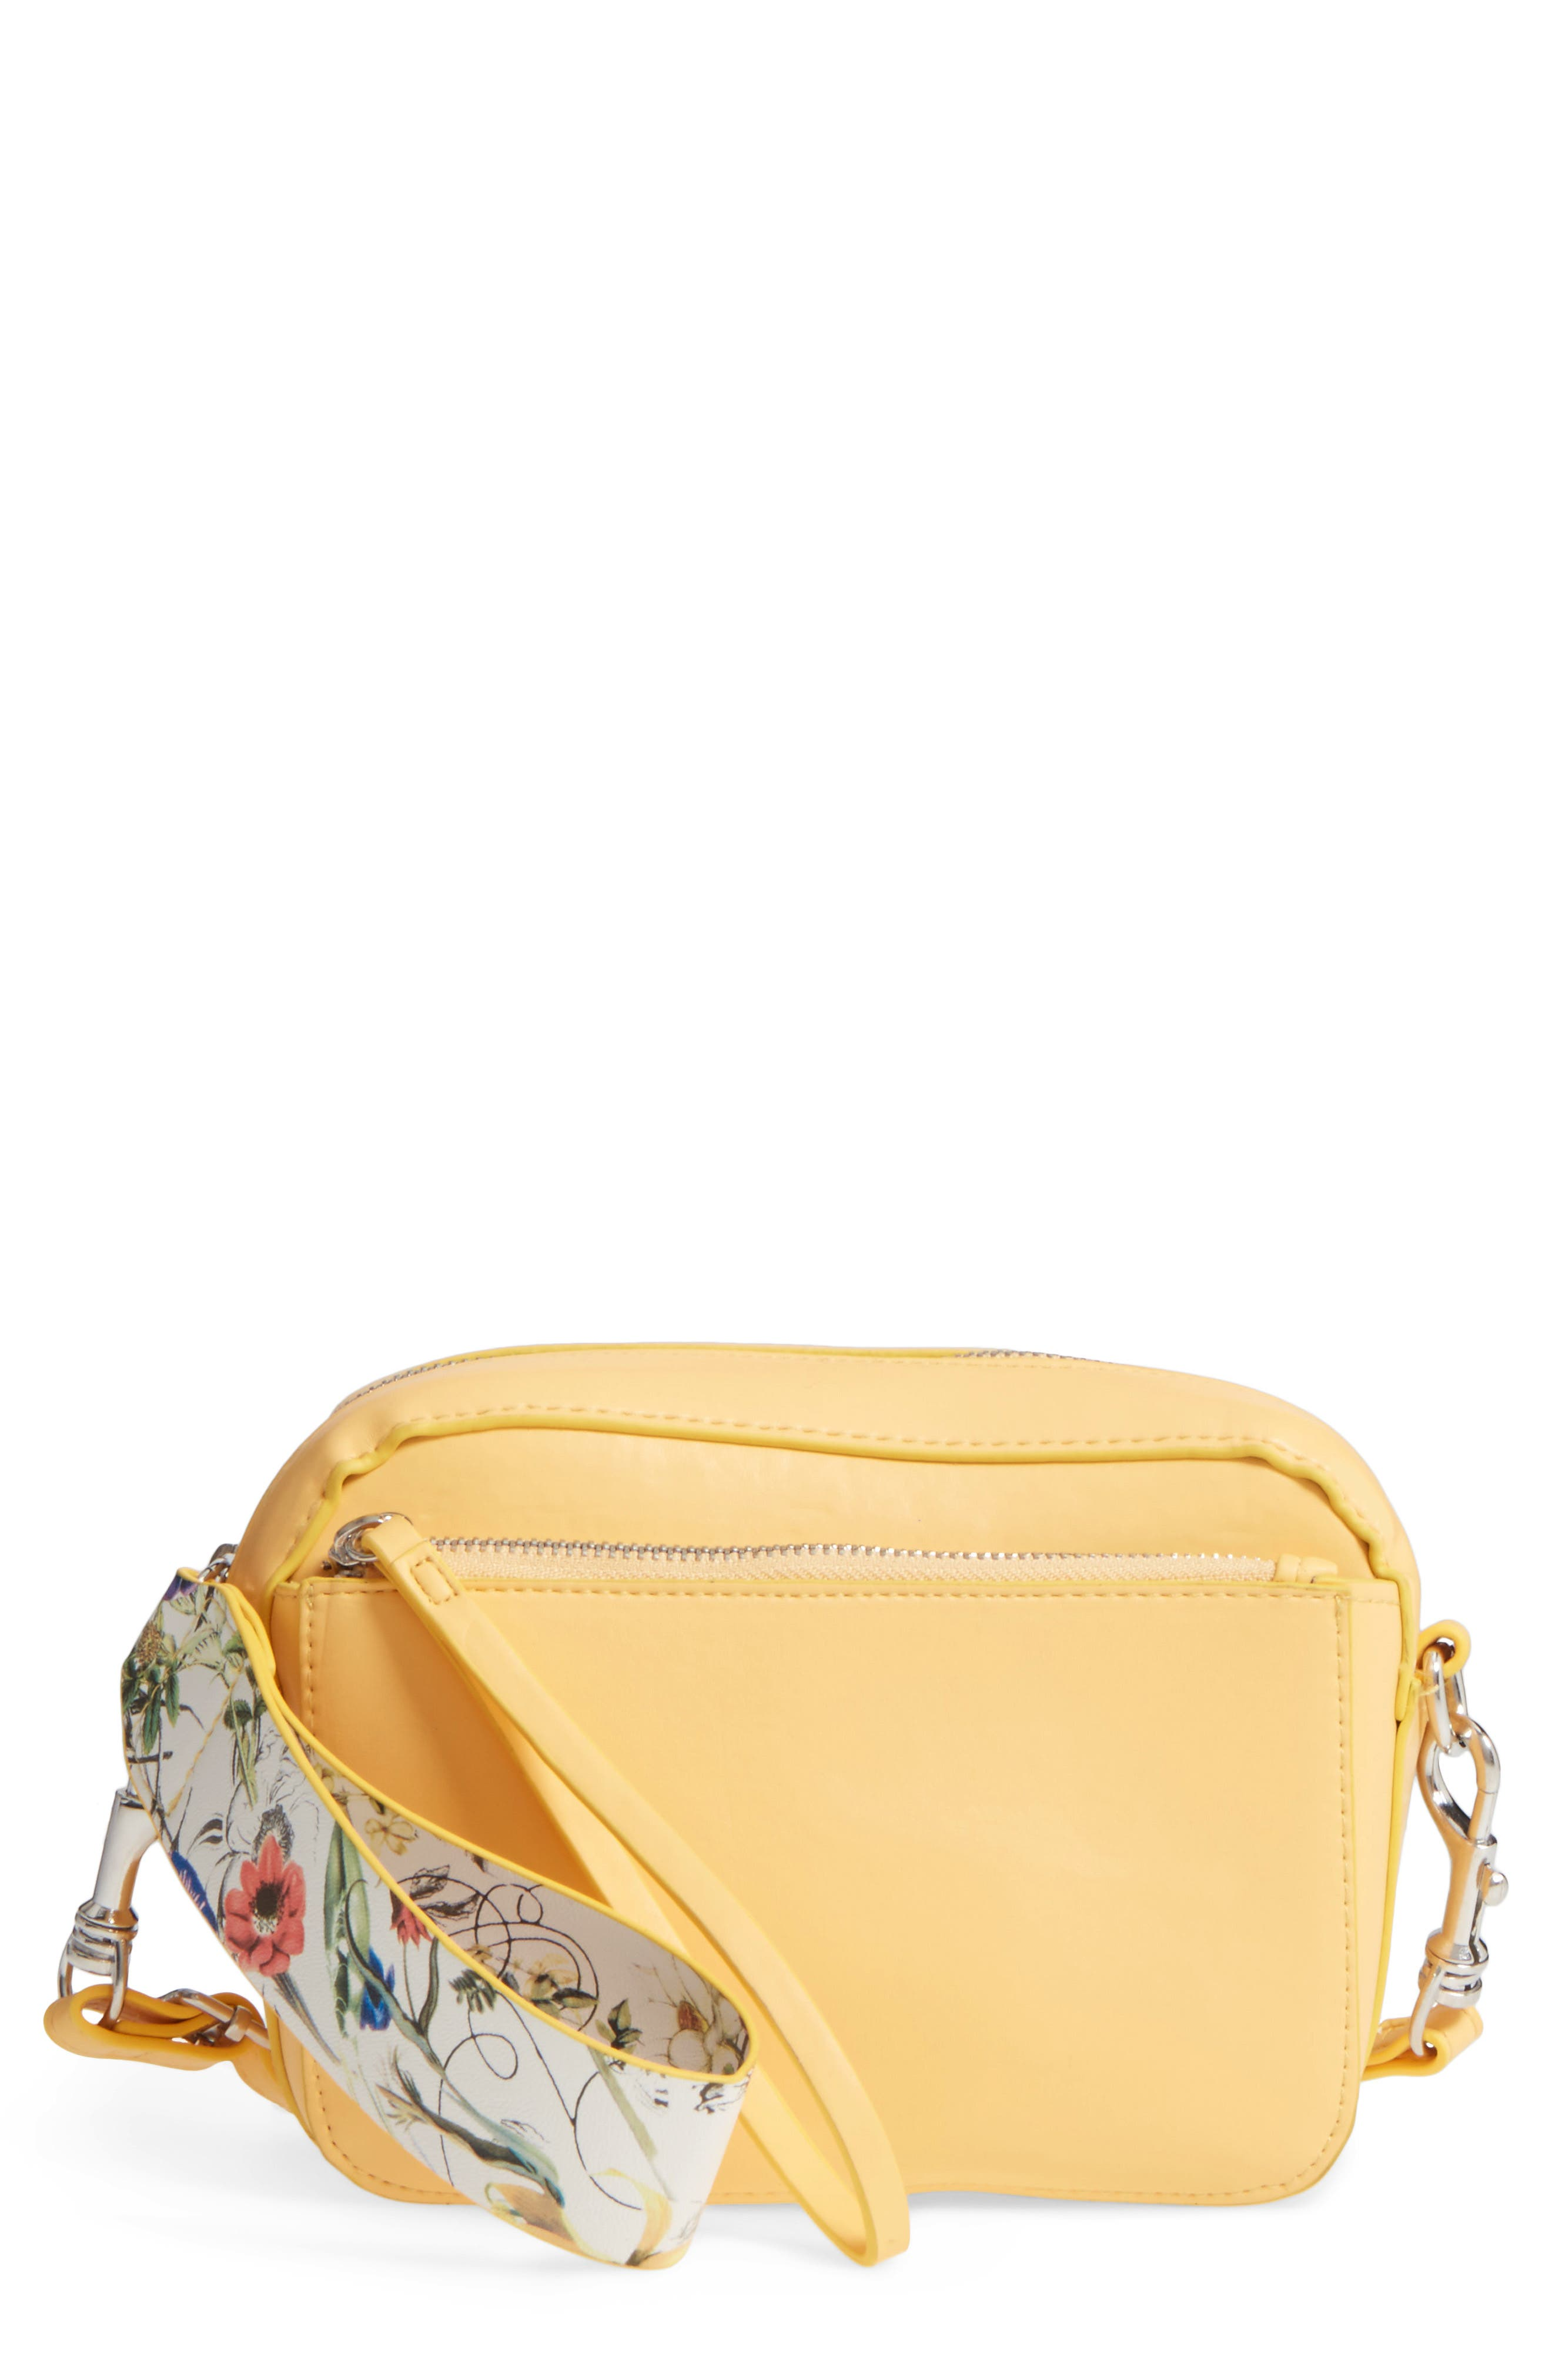 Alternate Image 1 Selected - BP. Faux Leather Crossbody Wristlet